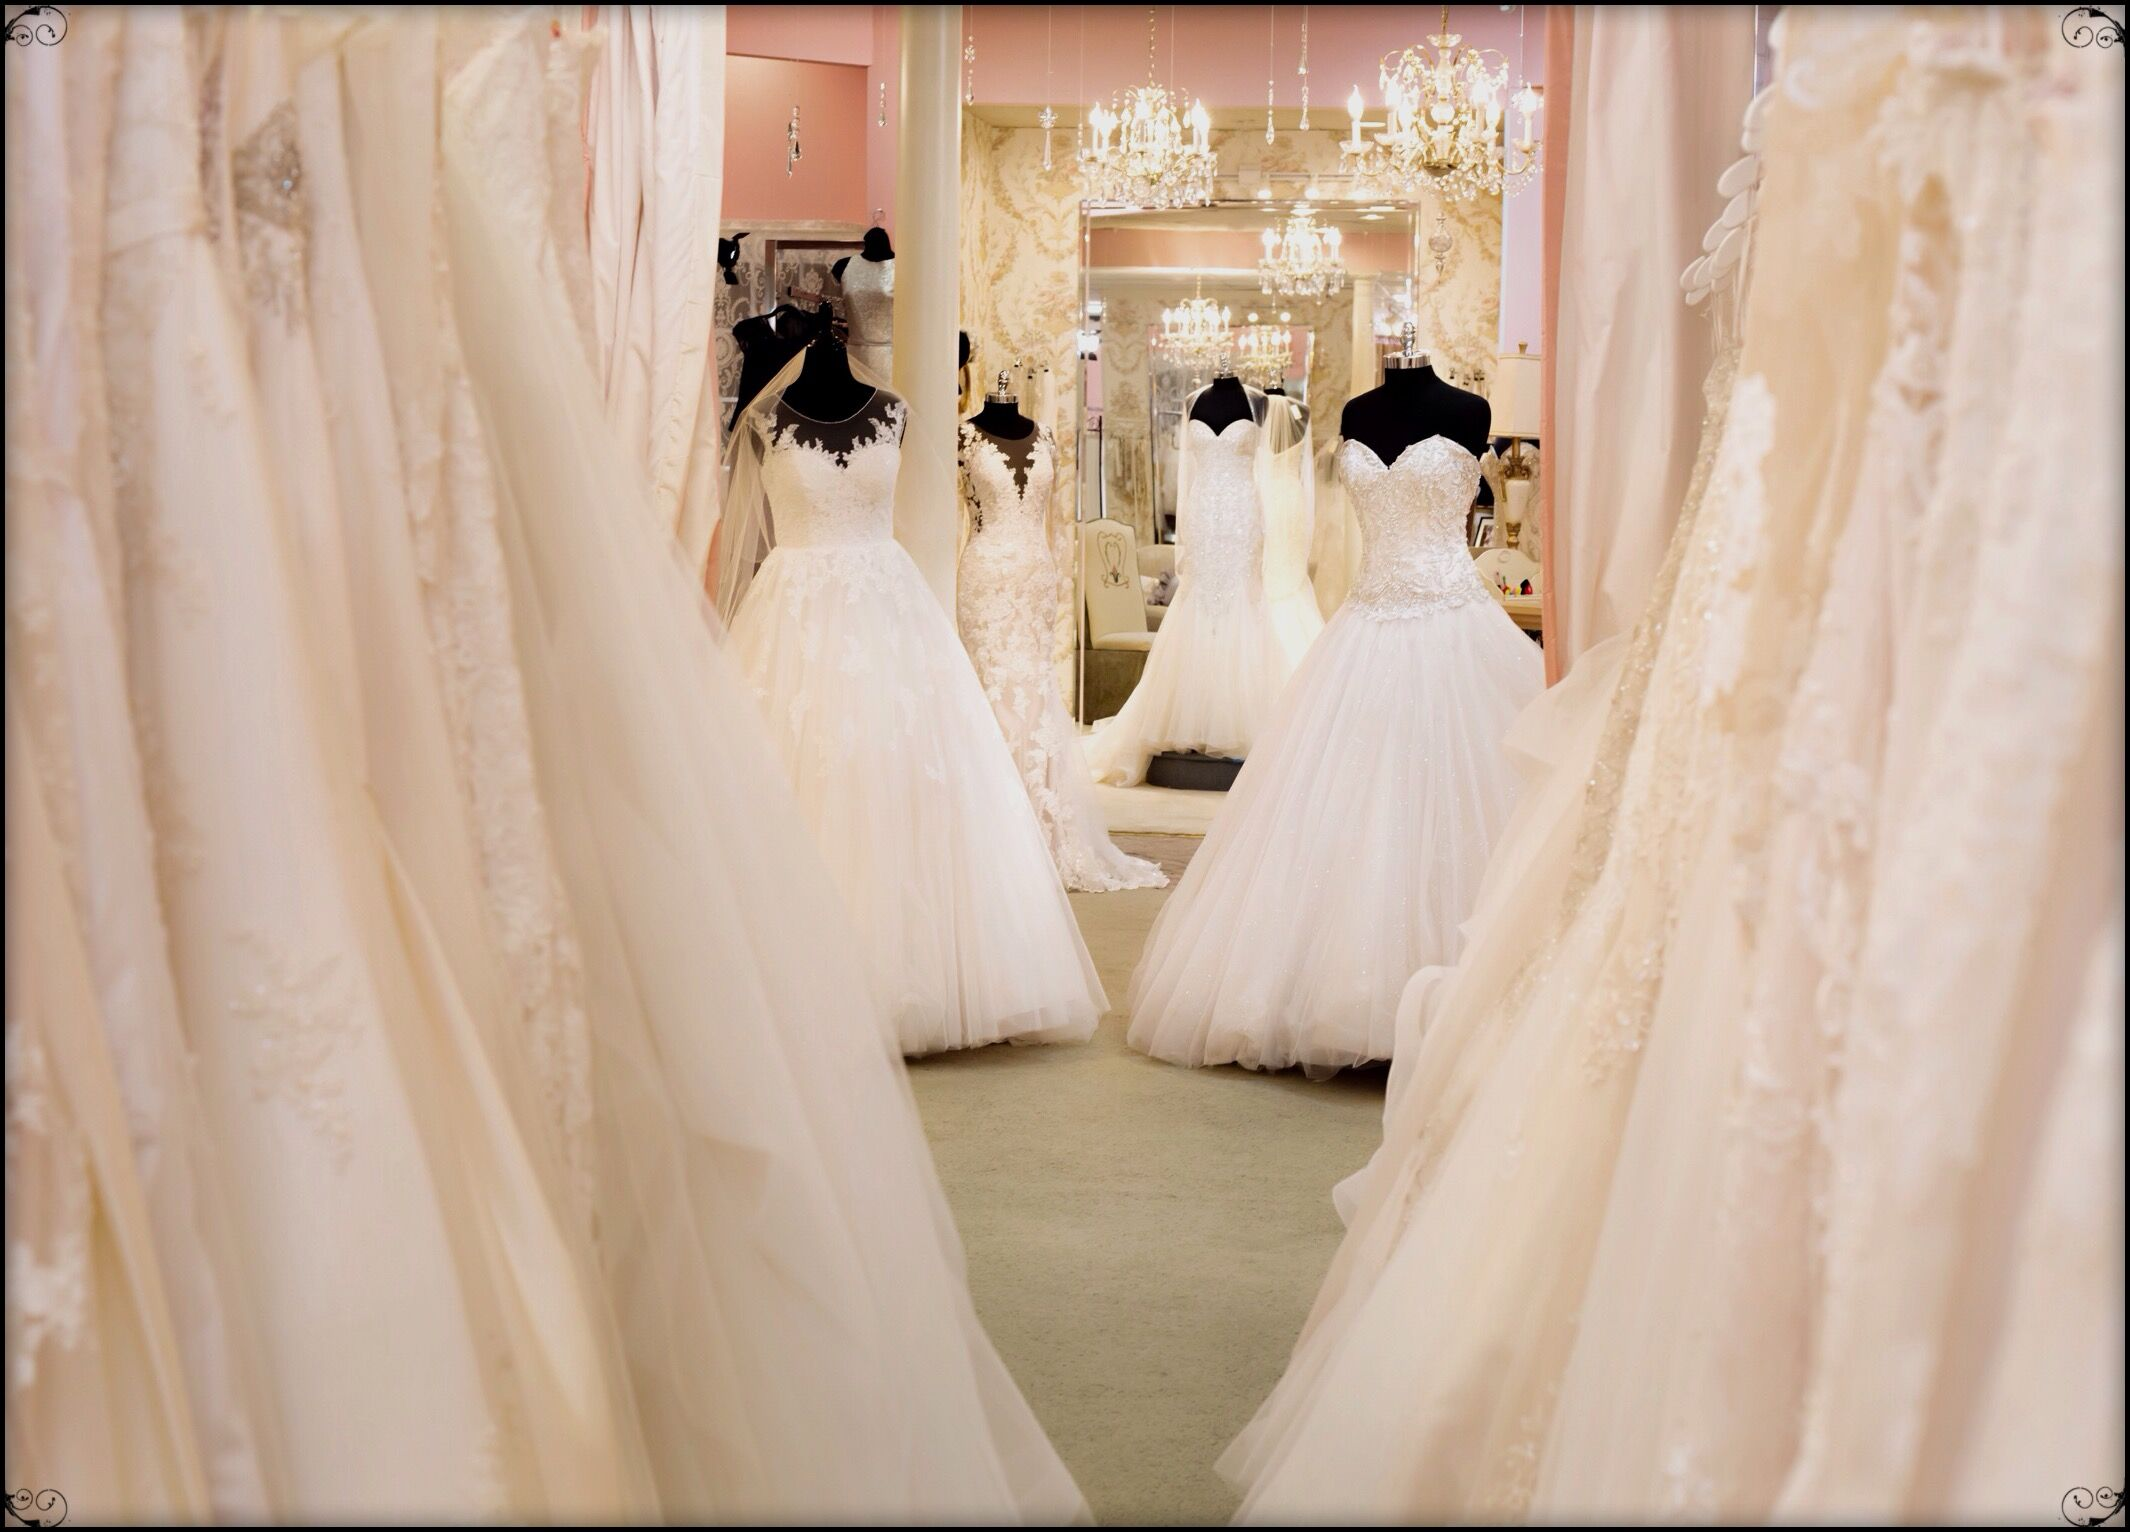 The Bridal Suite Of Louisville The Knot,Wedding Dresses For Sale At China Mall Johannesburg